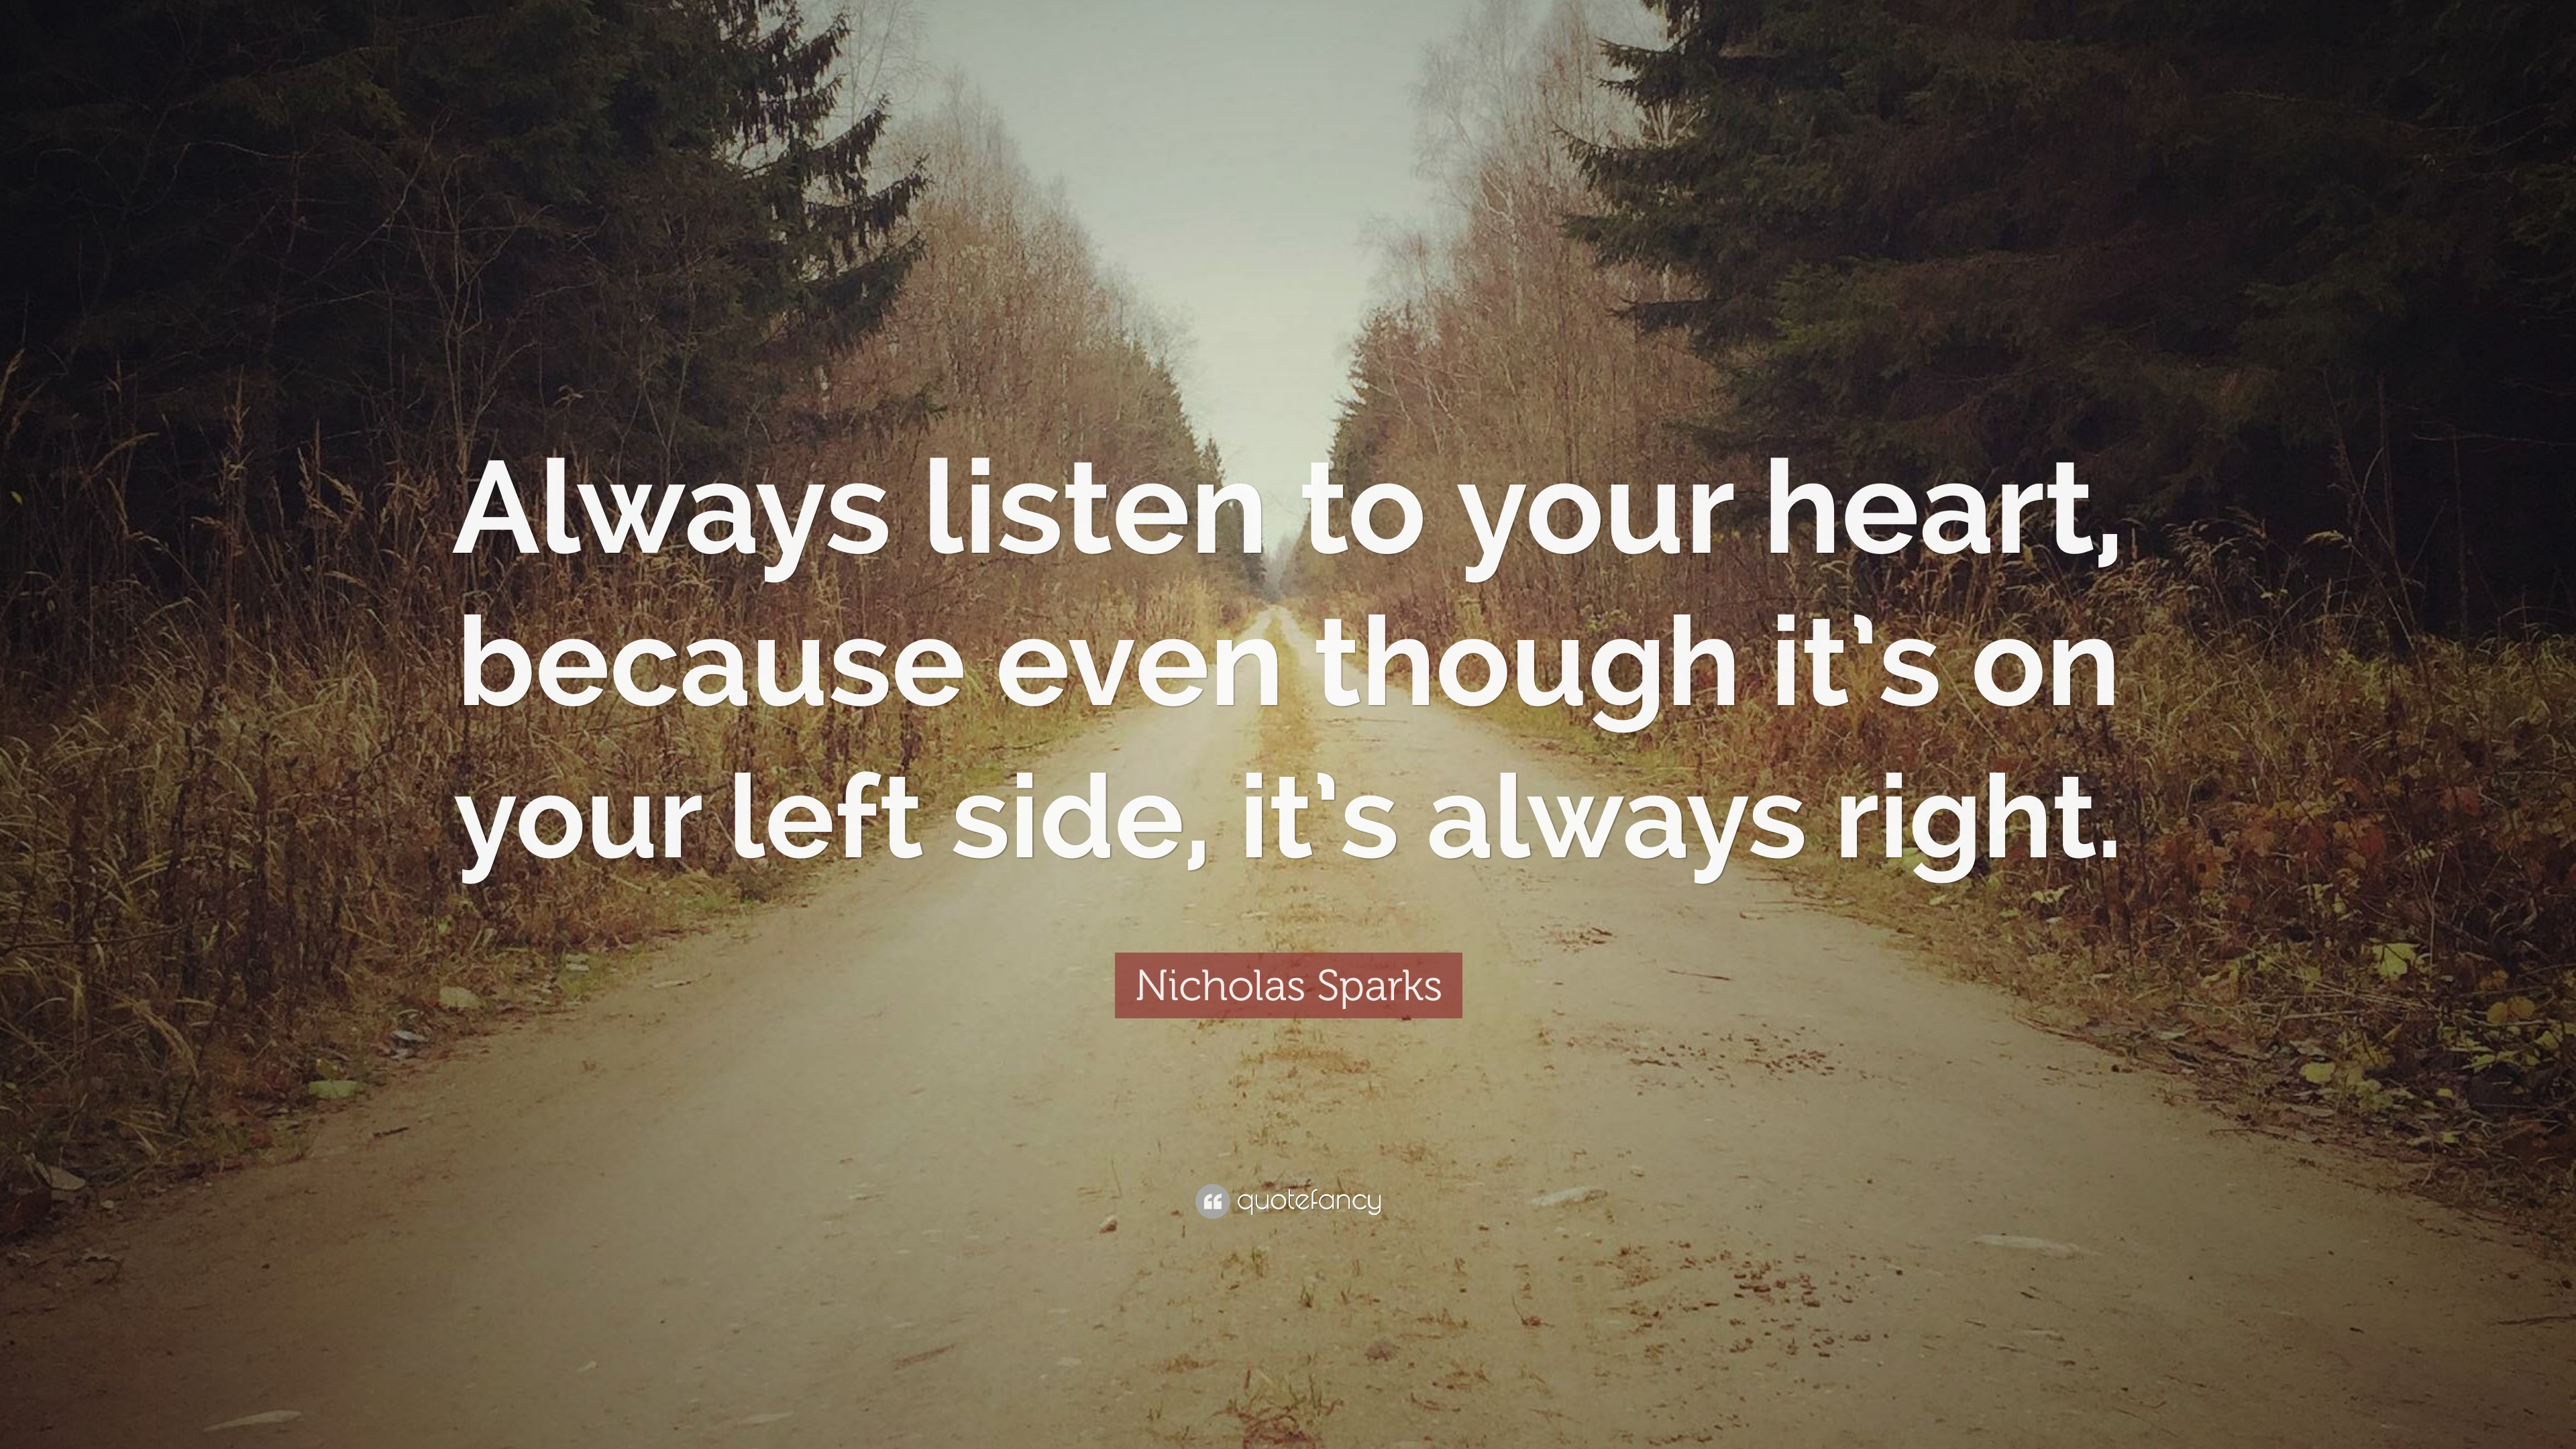 Exceptional Nicholas Sparks Quote: U201cAlways Listen To Your Heart, Because Even Though  Itu0027s On